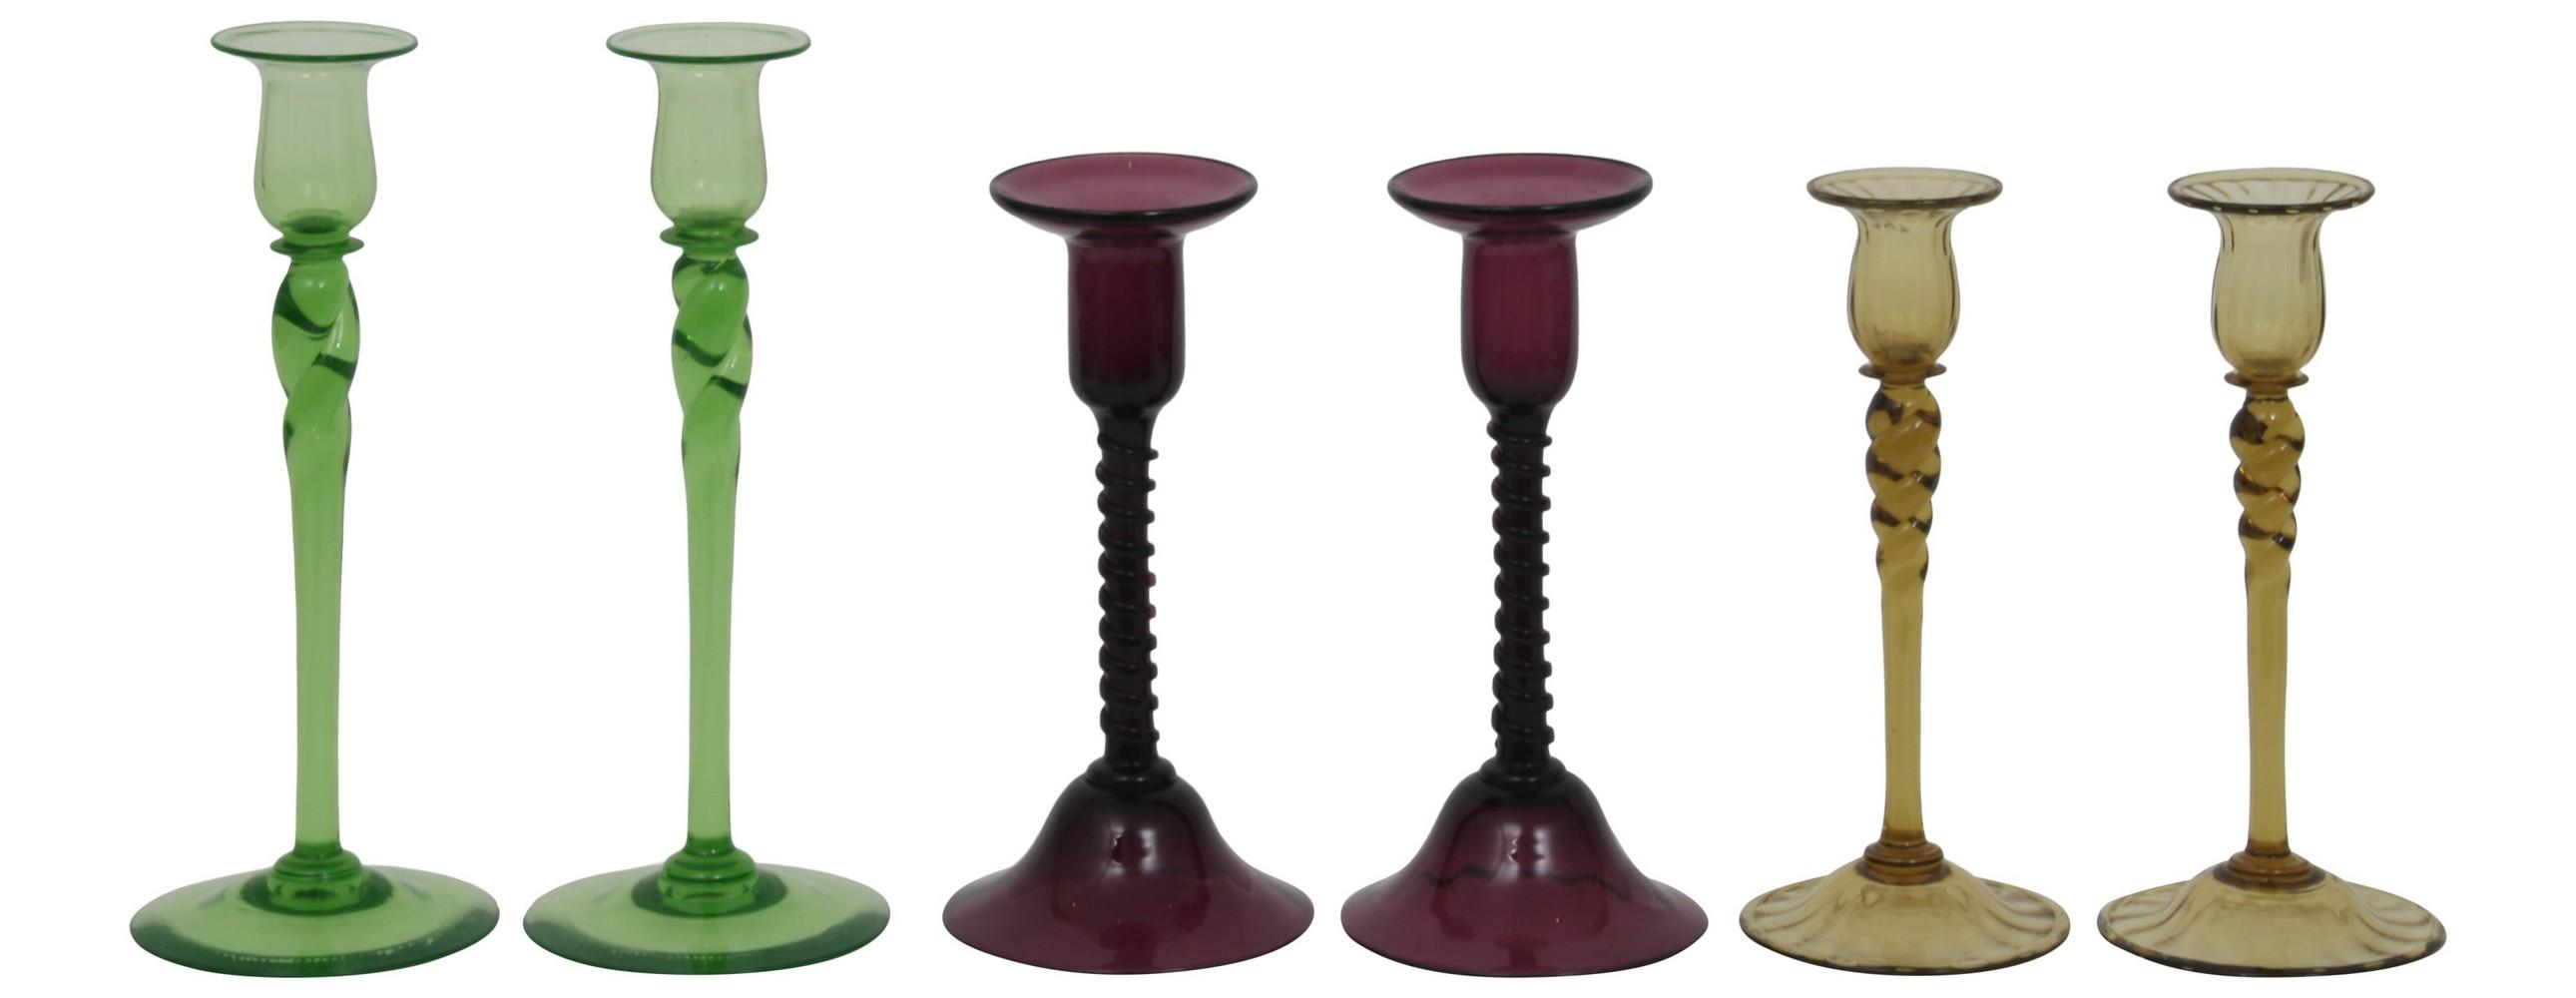 Three Pairs of Steuben Candlesticks